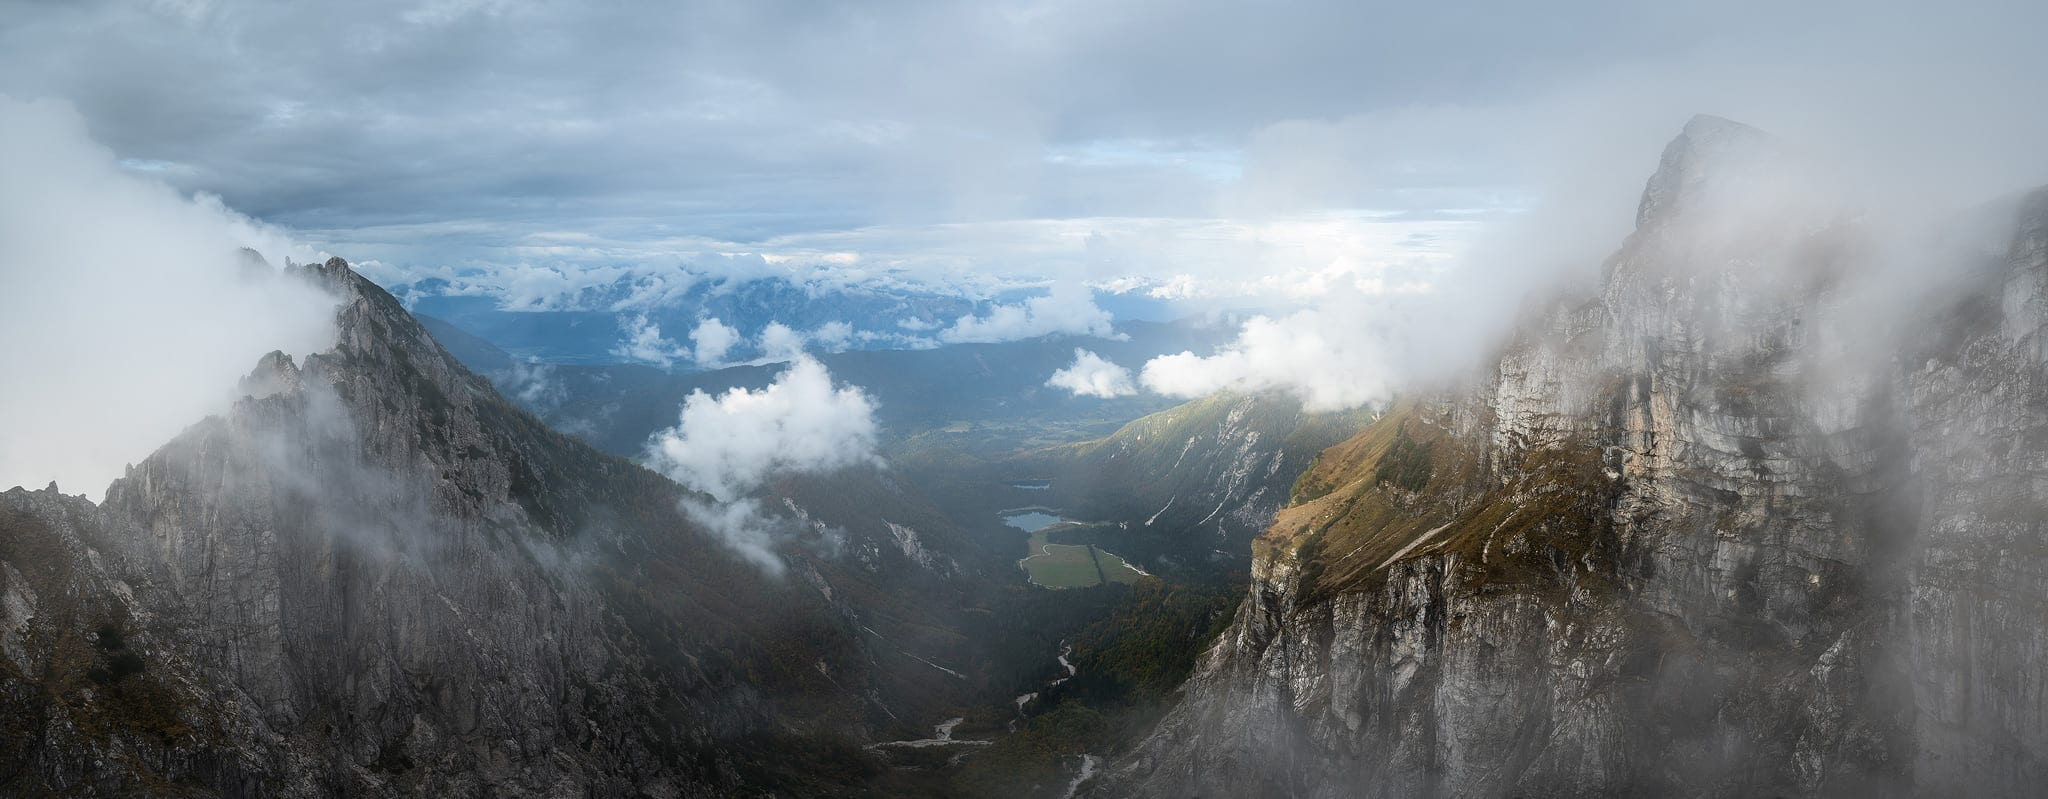 Mangart Saddle Panoramic - Slovenia Photography